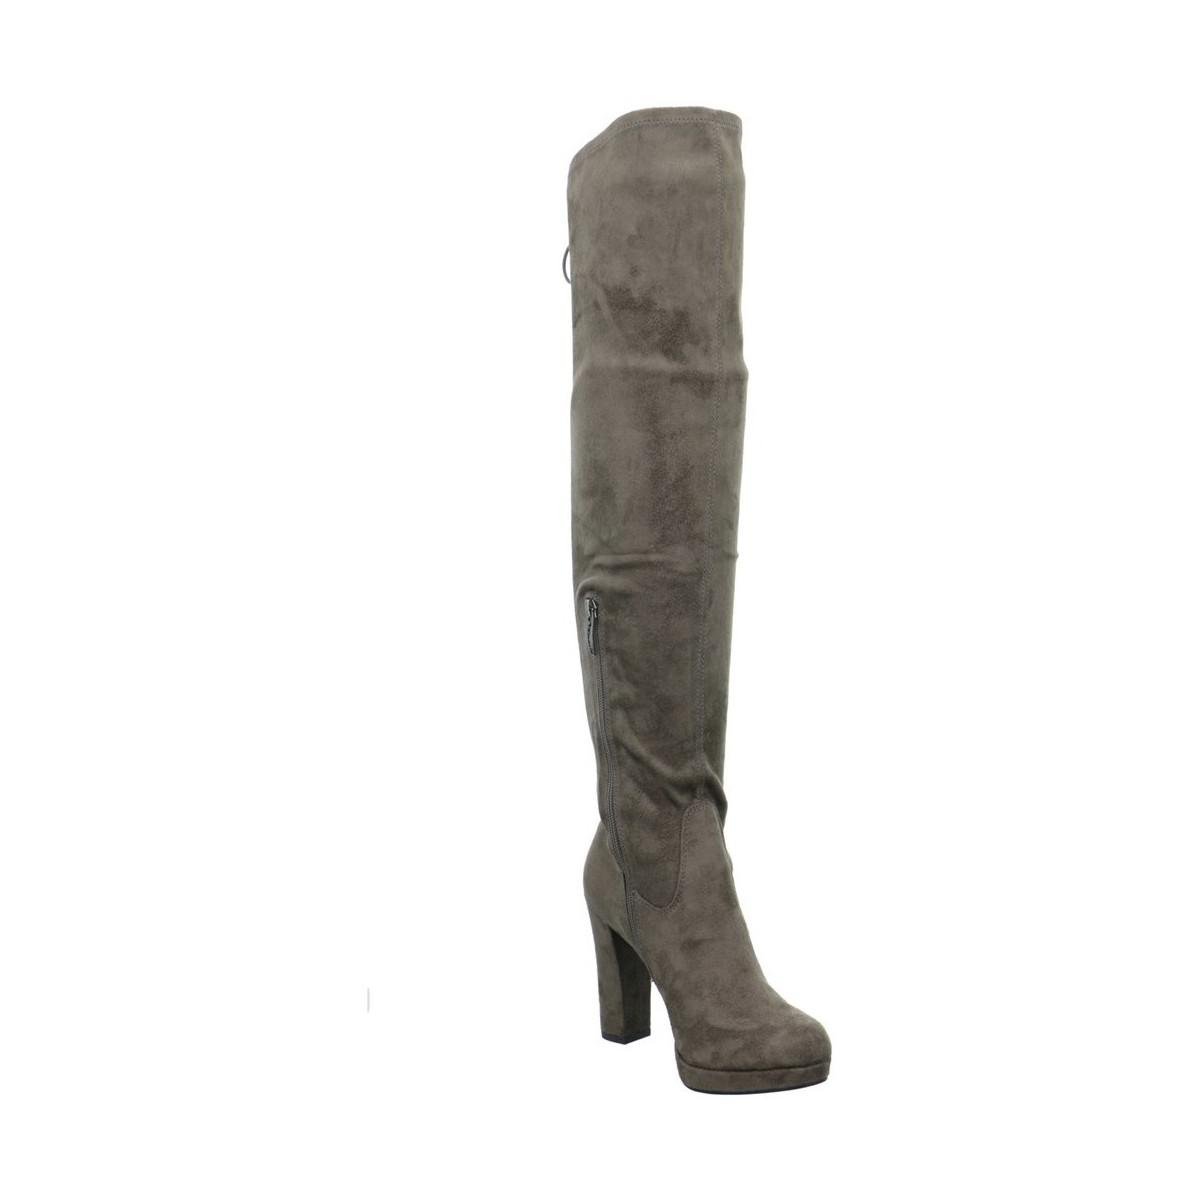 In Lyst Tamaris Overknee Brown High Boots Lycoris Women's PggUWqB8w